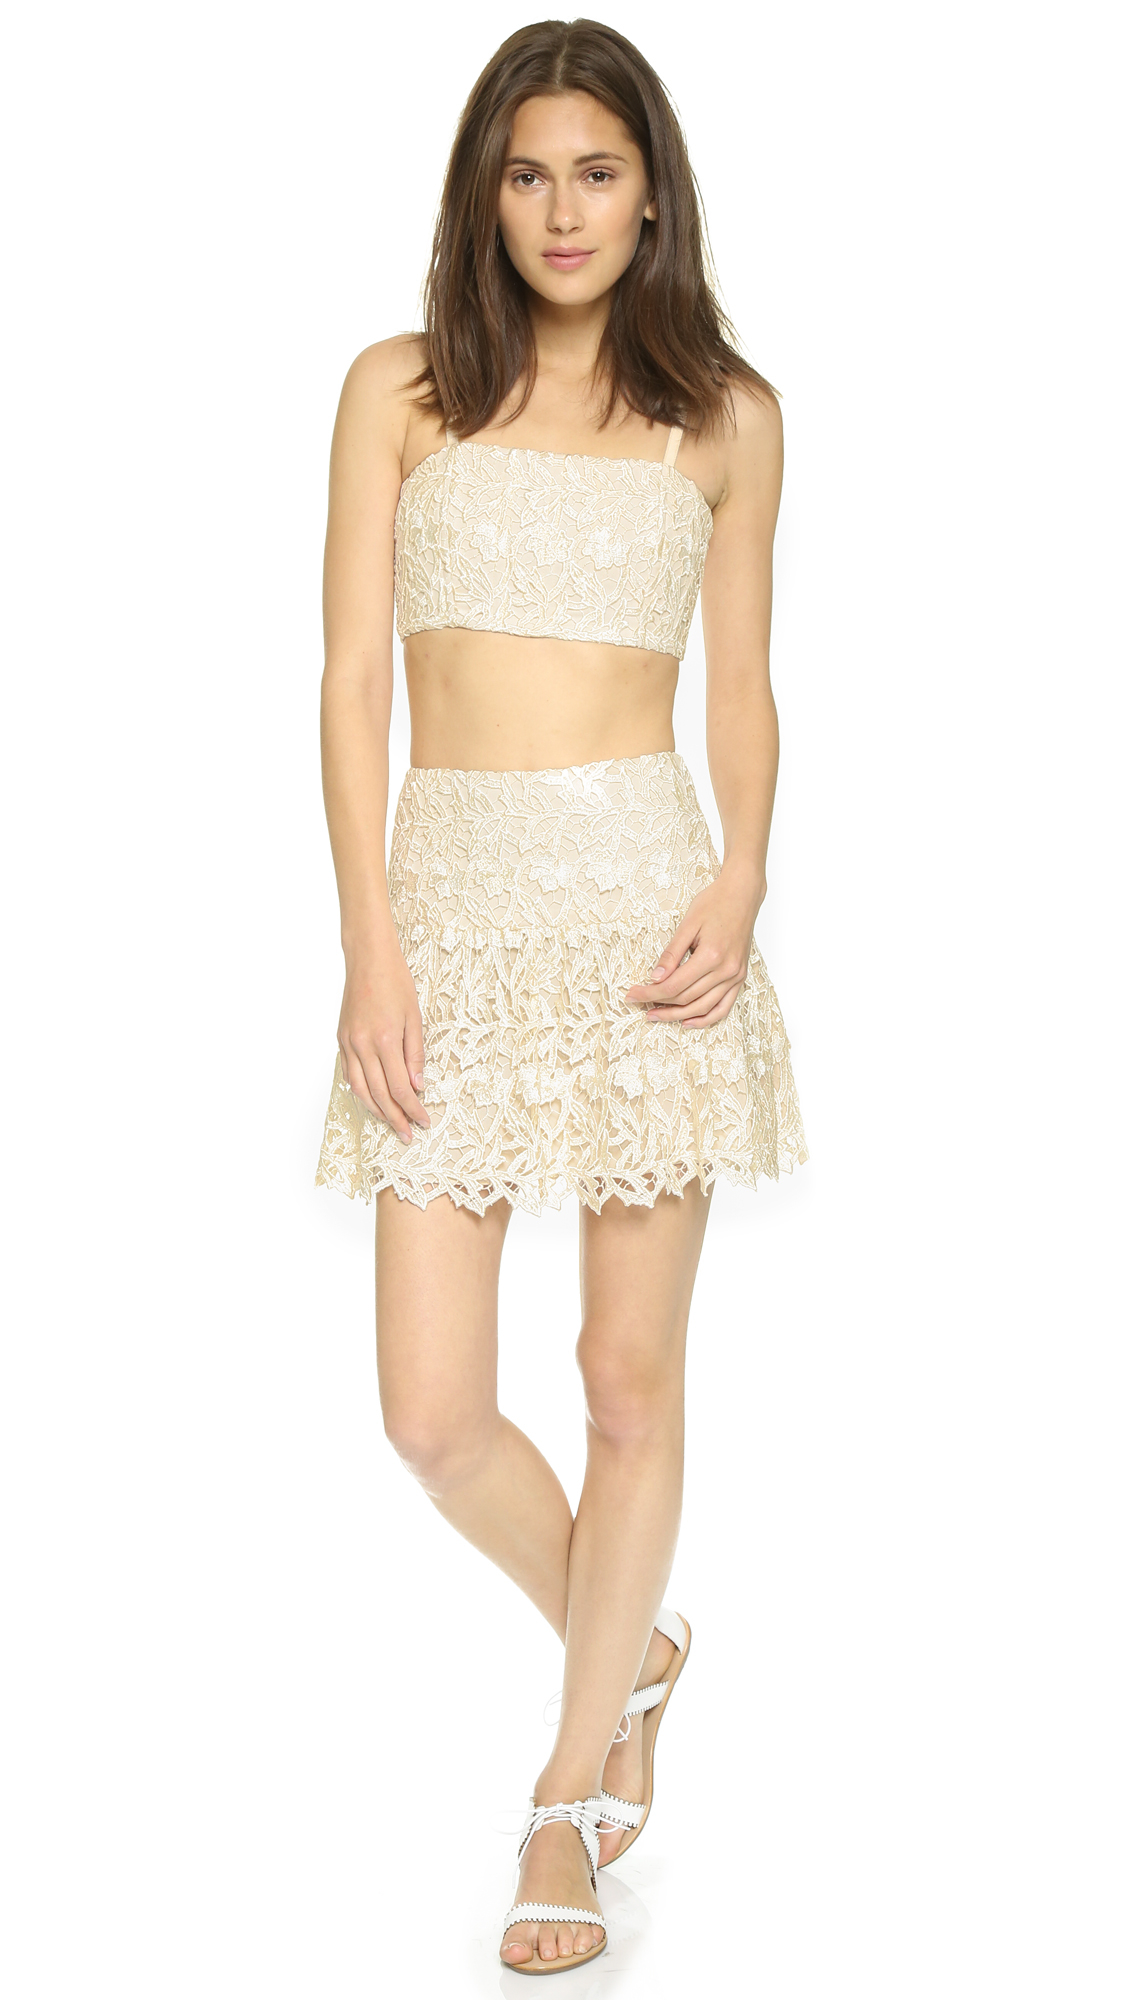 a26d8b96c8475 Alice + Olivia Marisol Lace Bustier Top - Cream natural in Natural ...